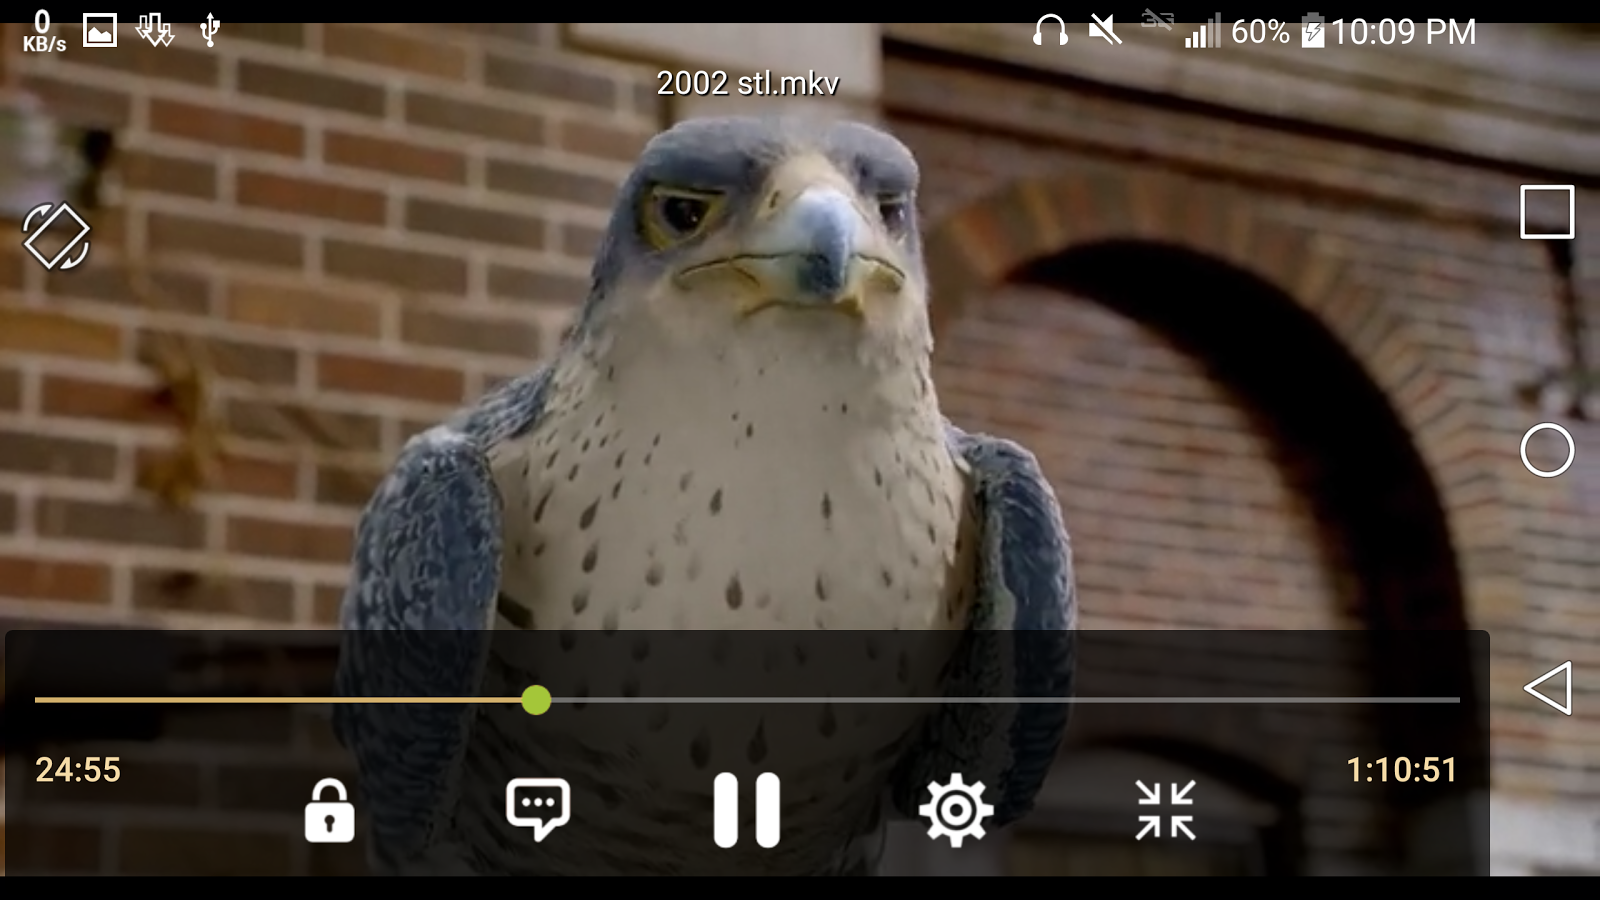 Media player classic home cinema free download| windows 64 & 32.